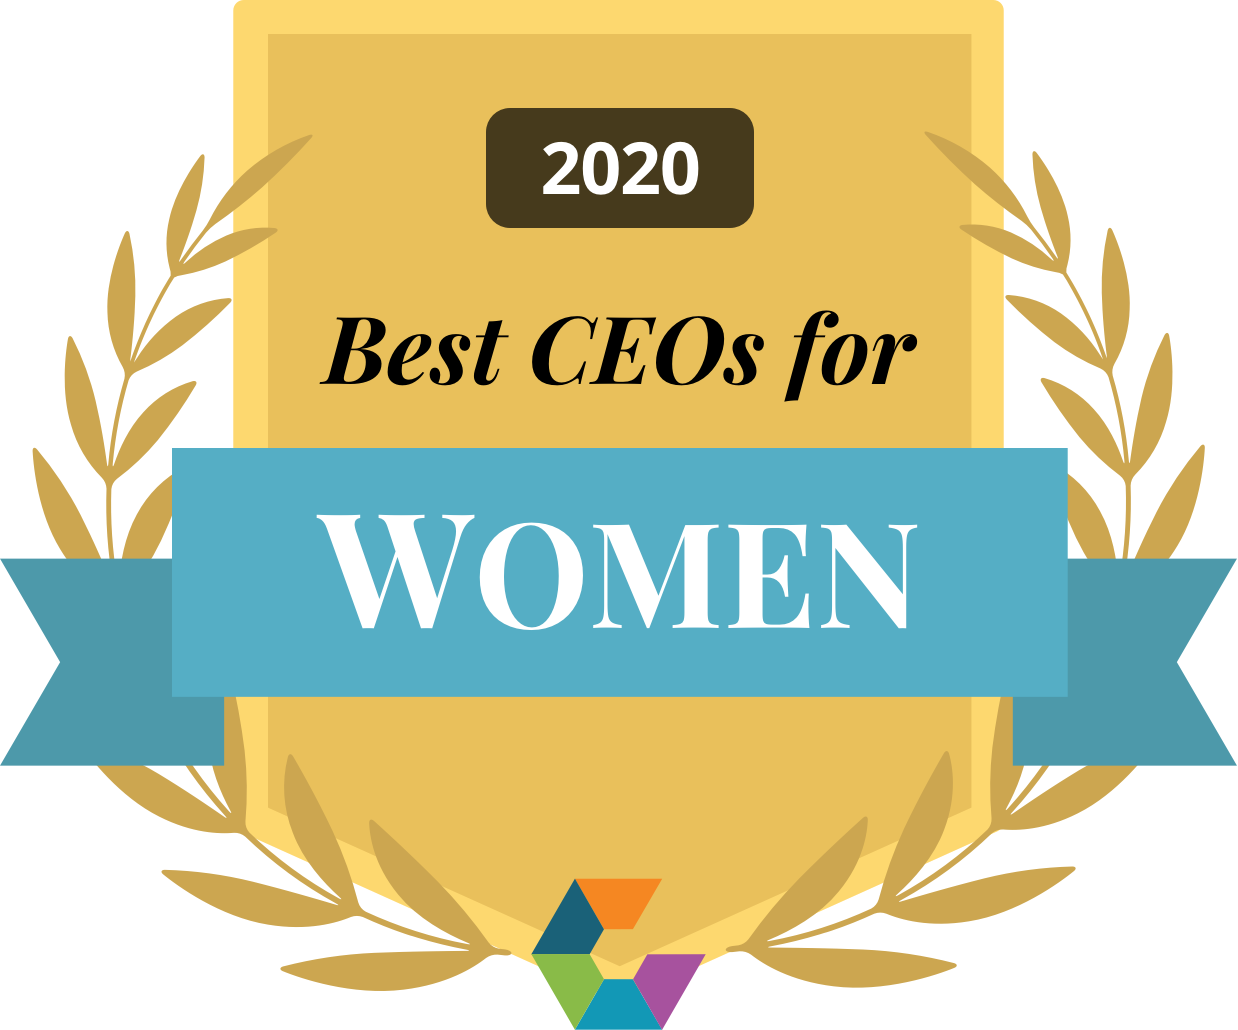 Comparably Best CEOs for Women 2020